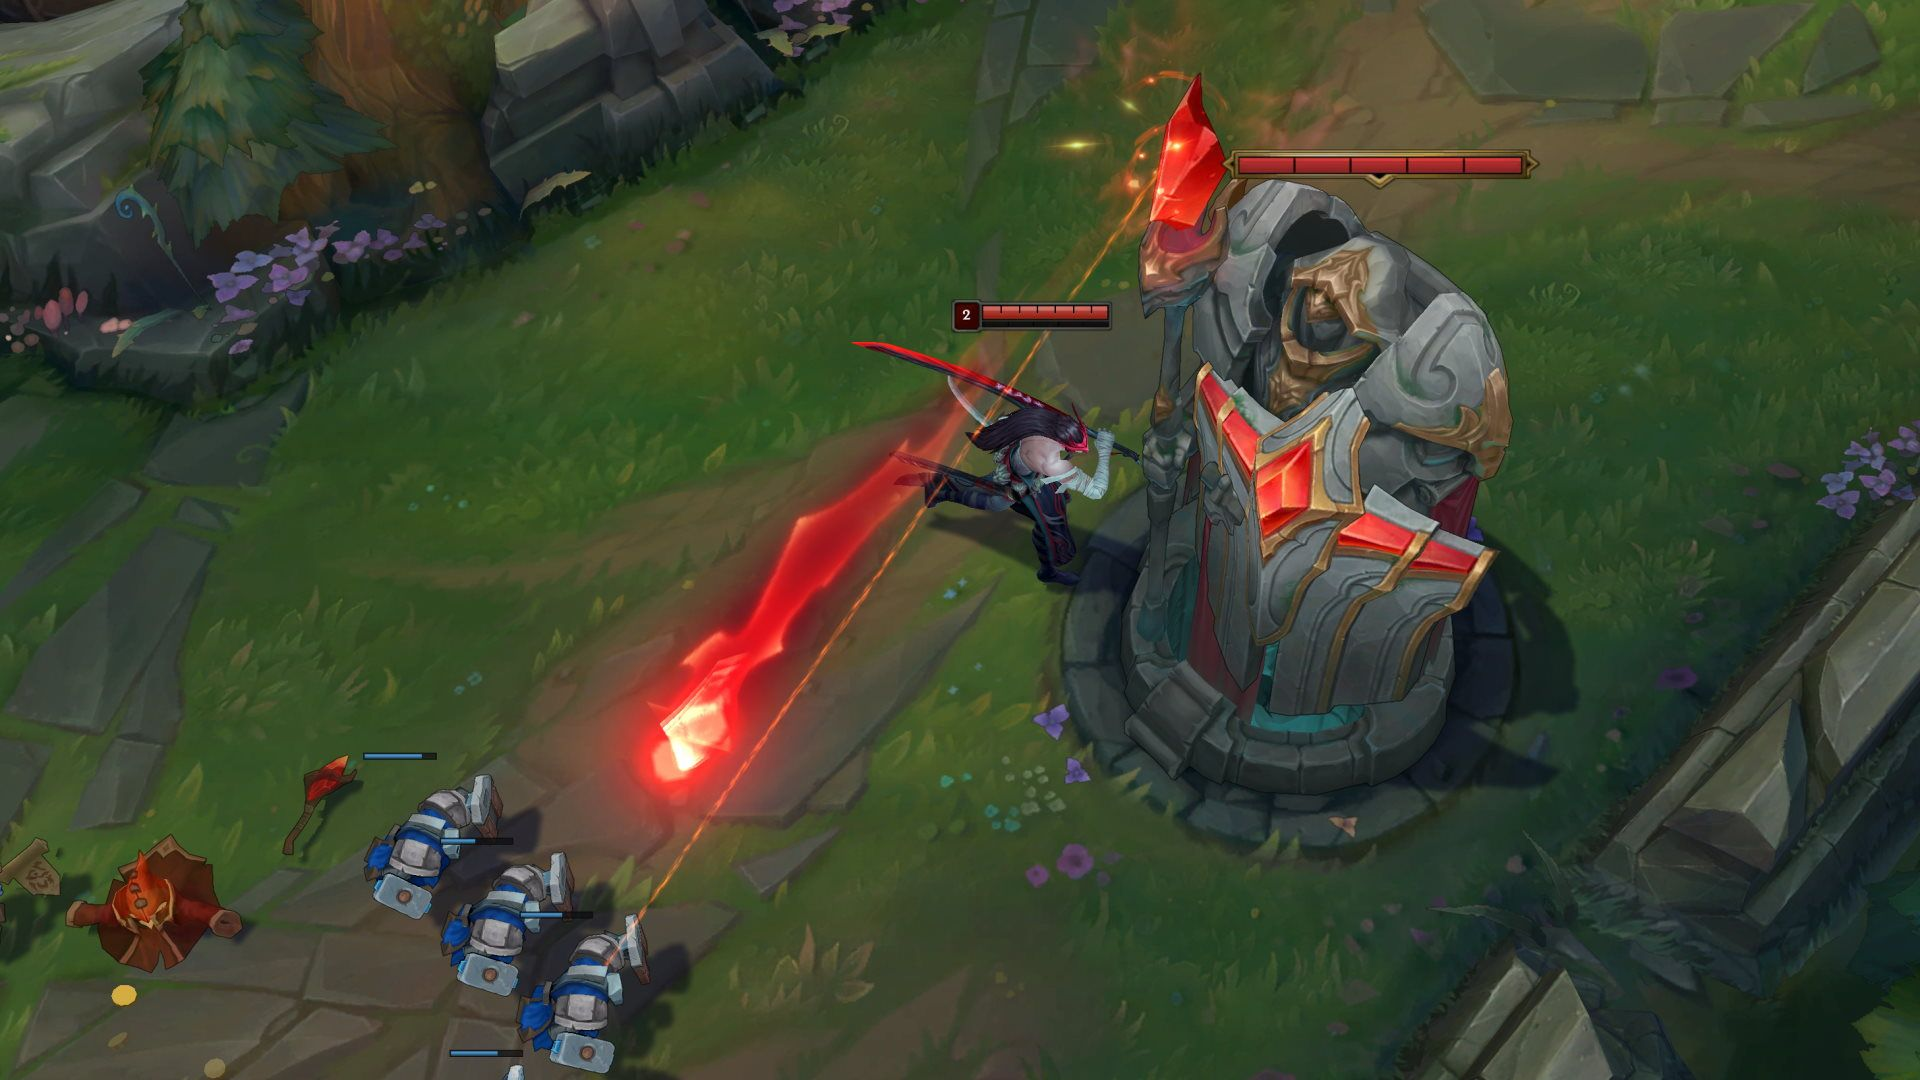 Outer turret of the midlane in League of Legends with active turret armor shoots minions.